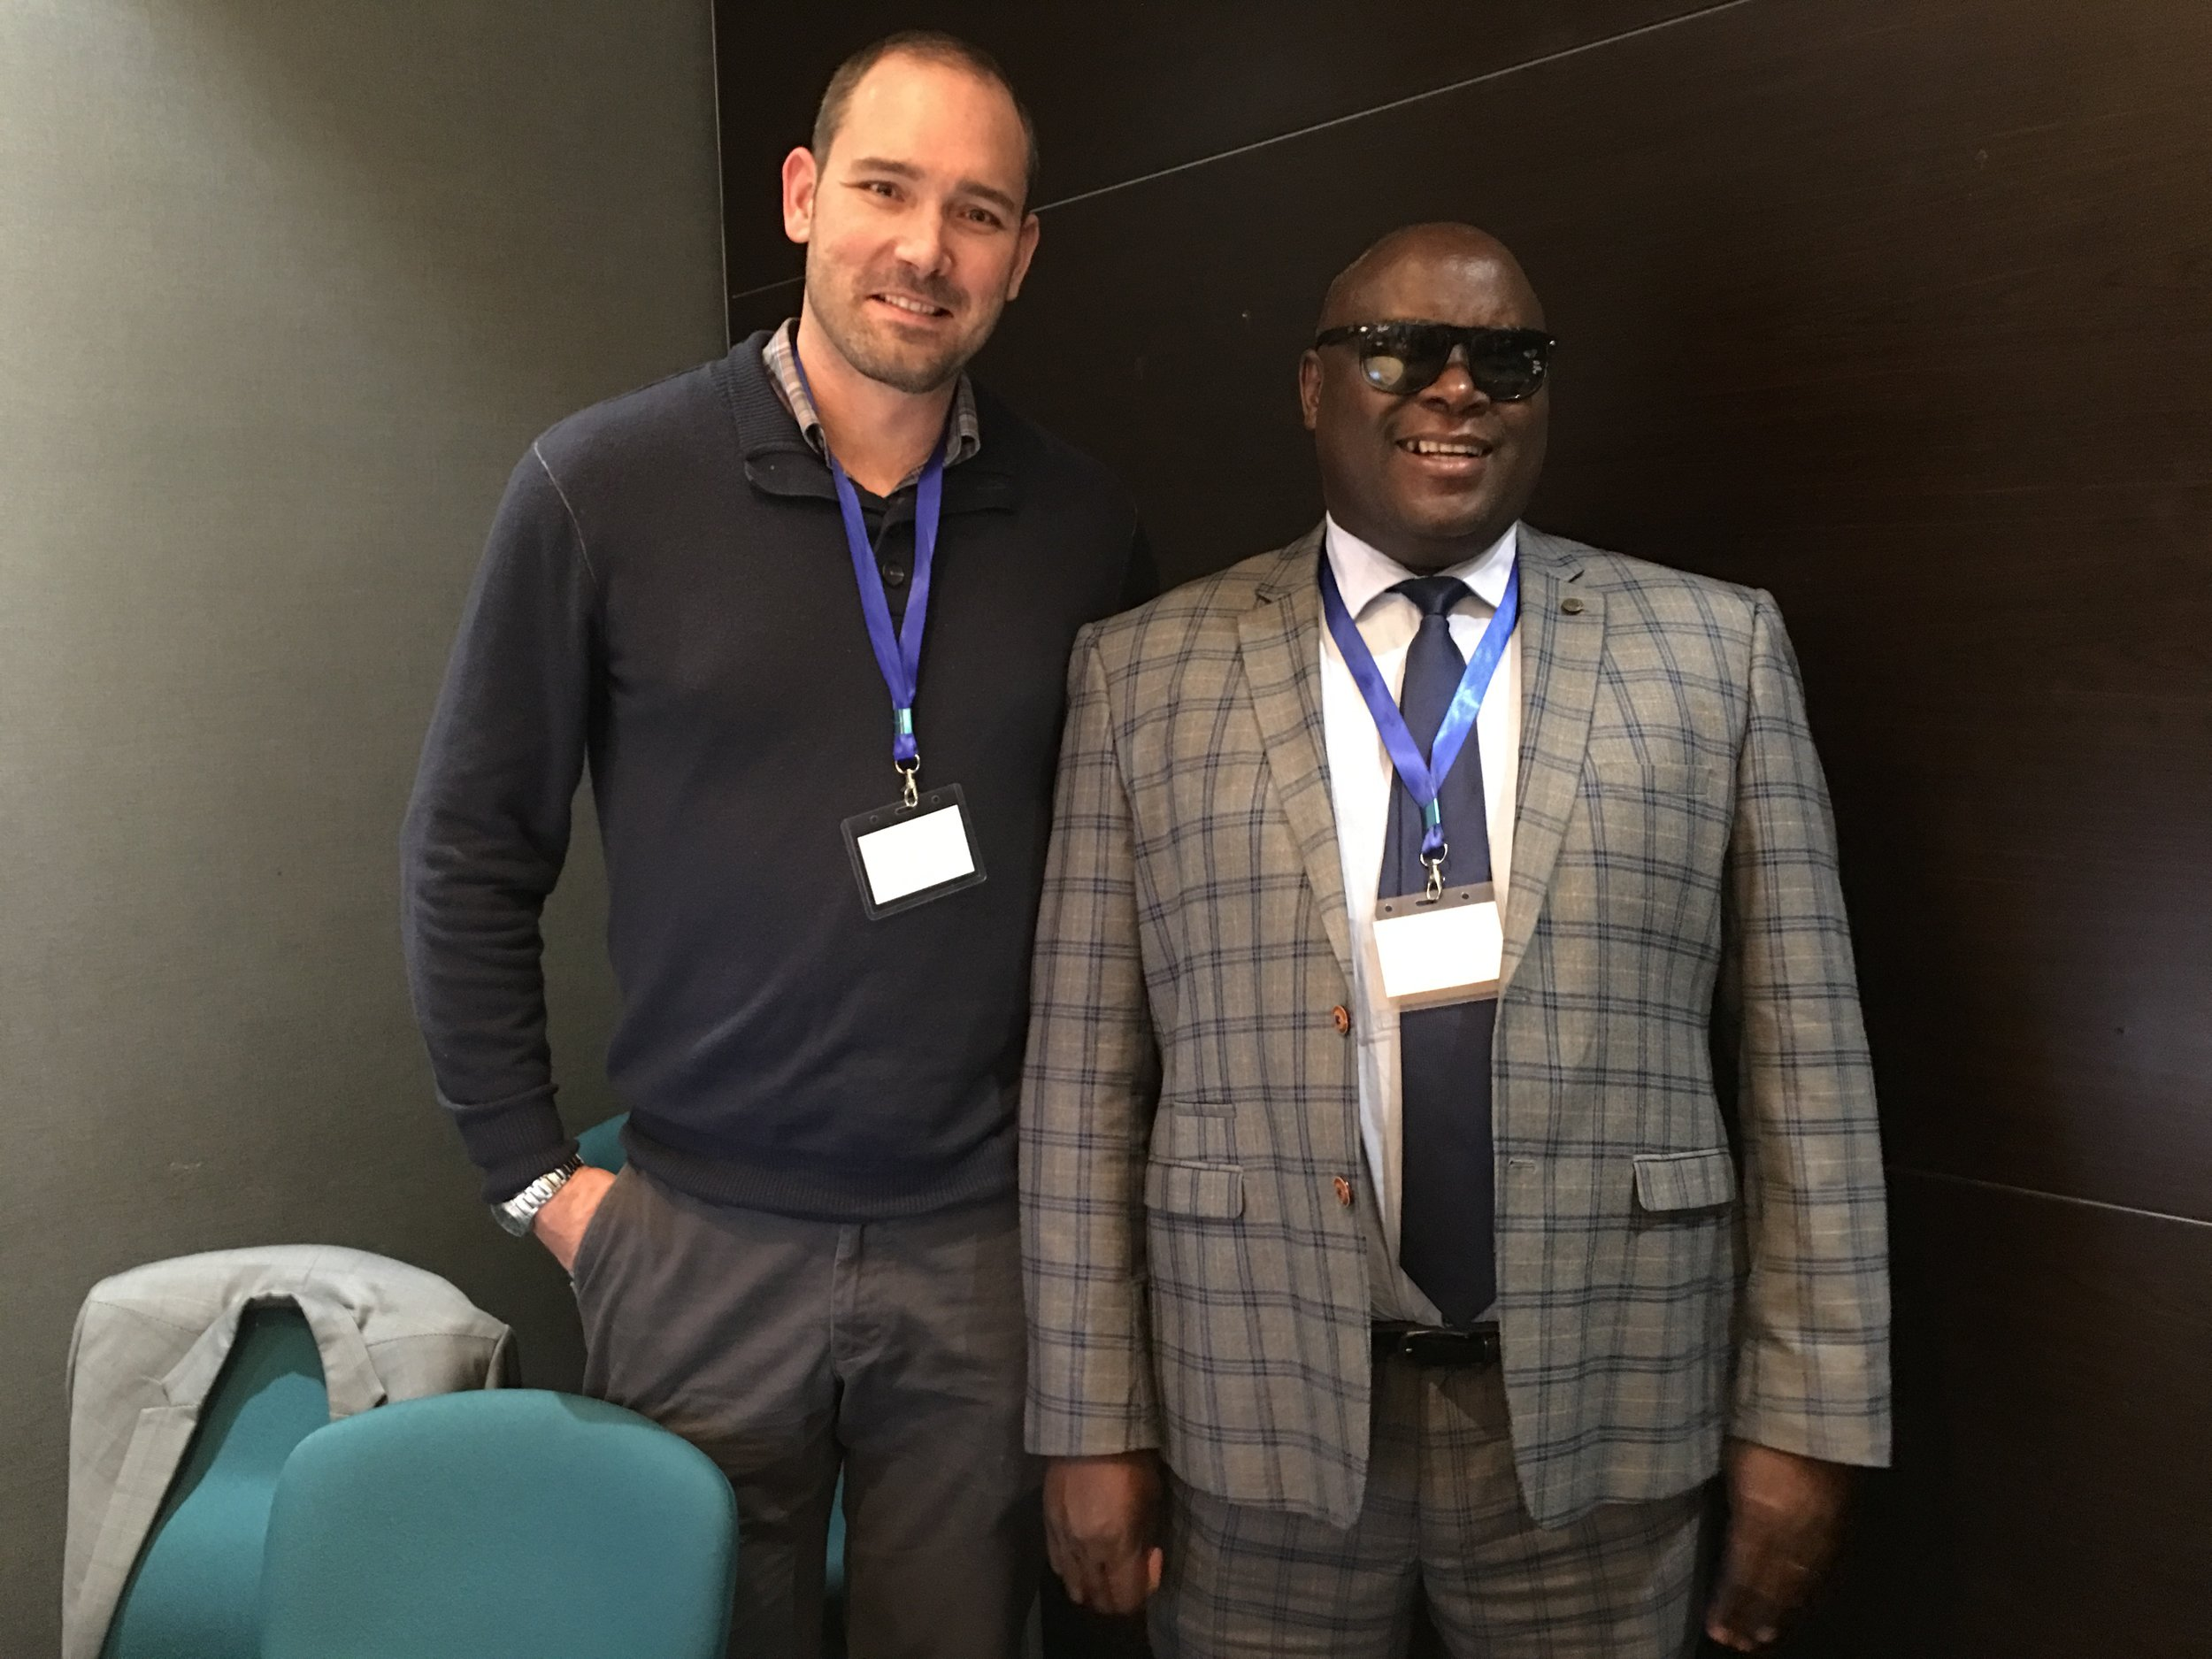 Brent Elder of Rowan University and Tangata Group (left) and Fred Haga, the KenyanDeputy Director in the Directorate of Special Needs Education (right) pose for a picture.